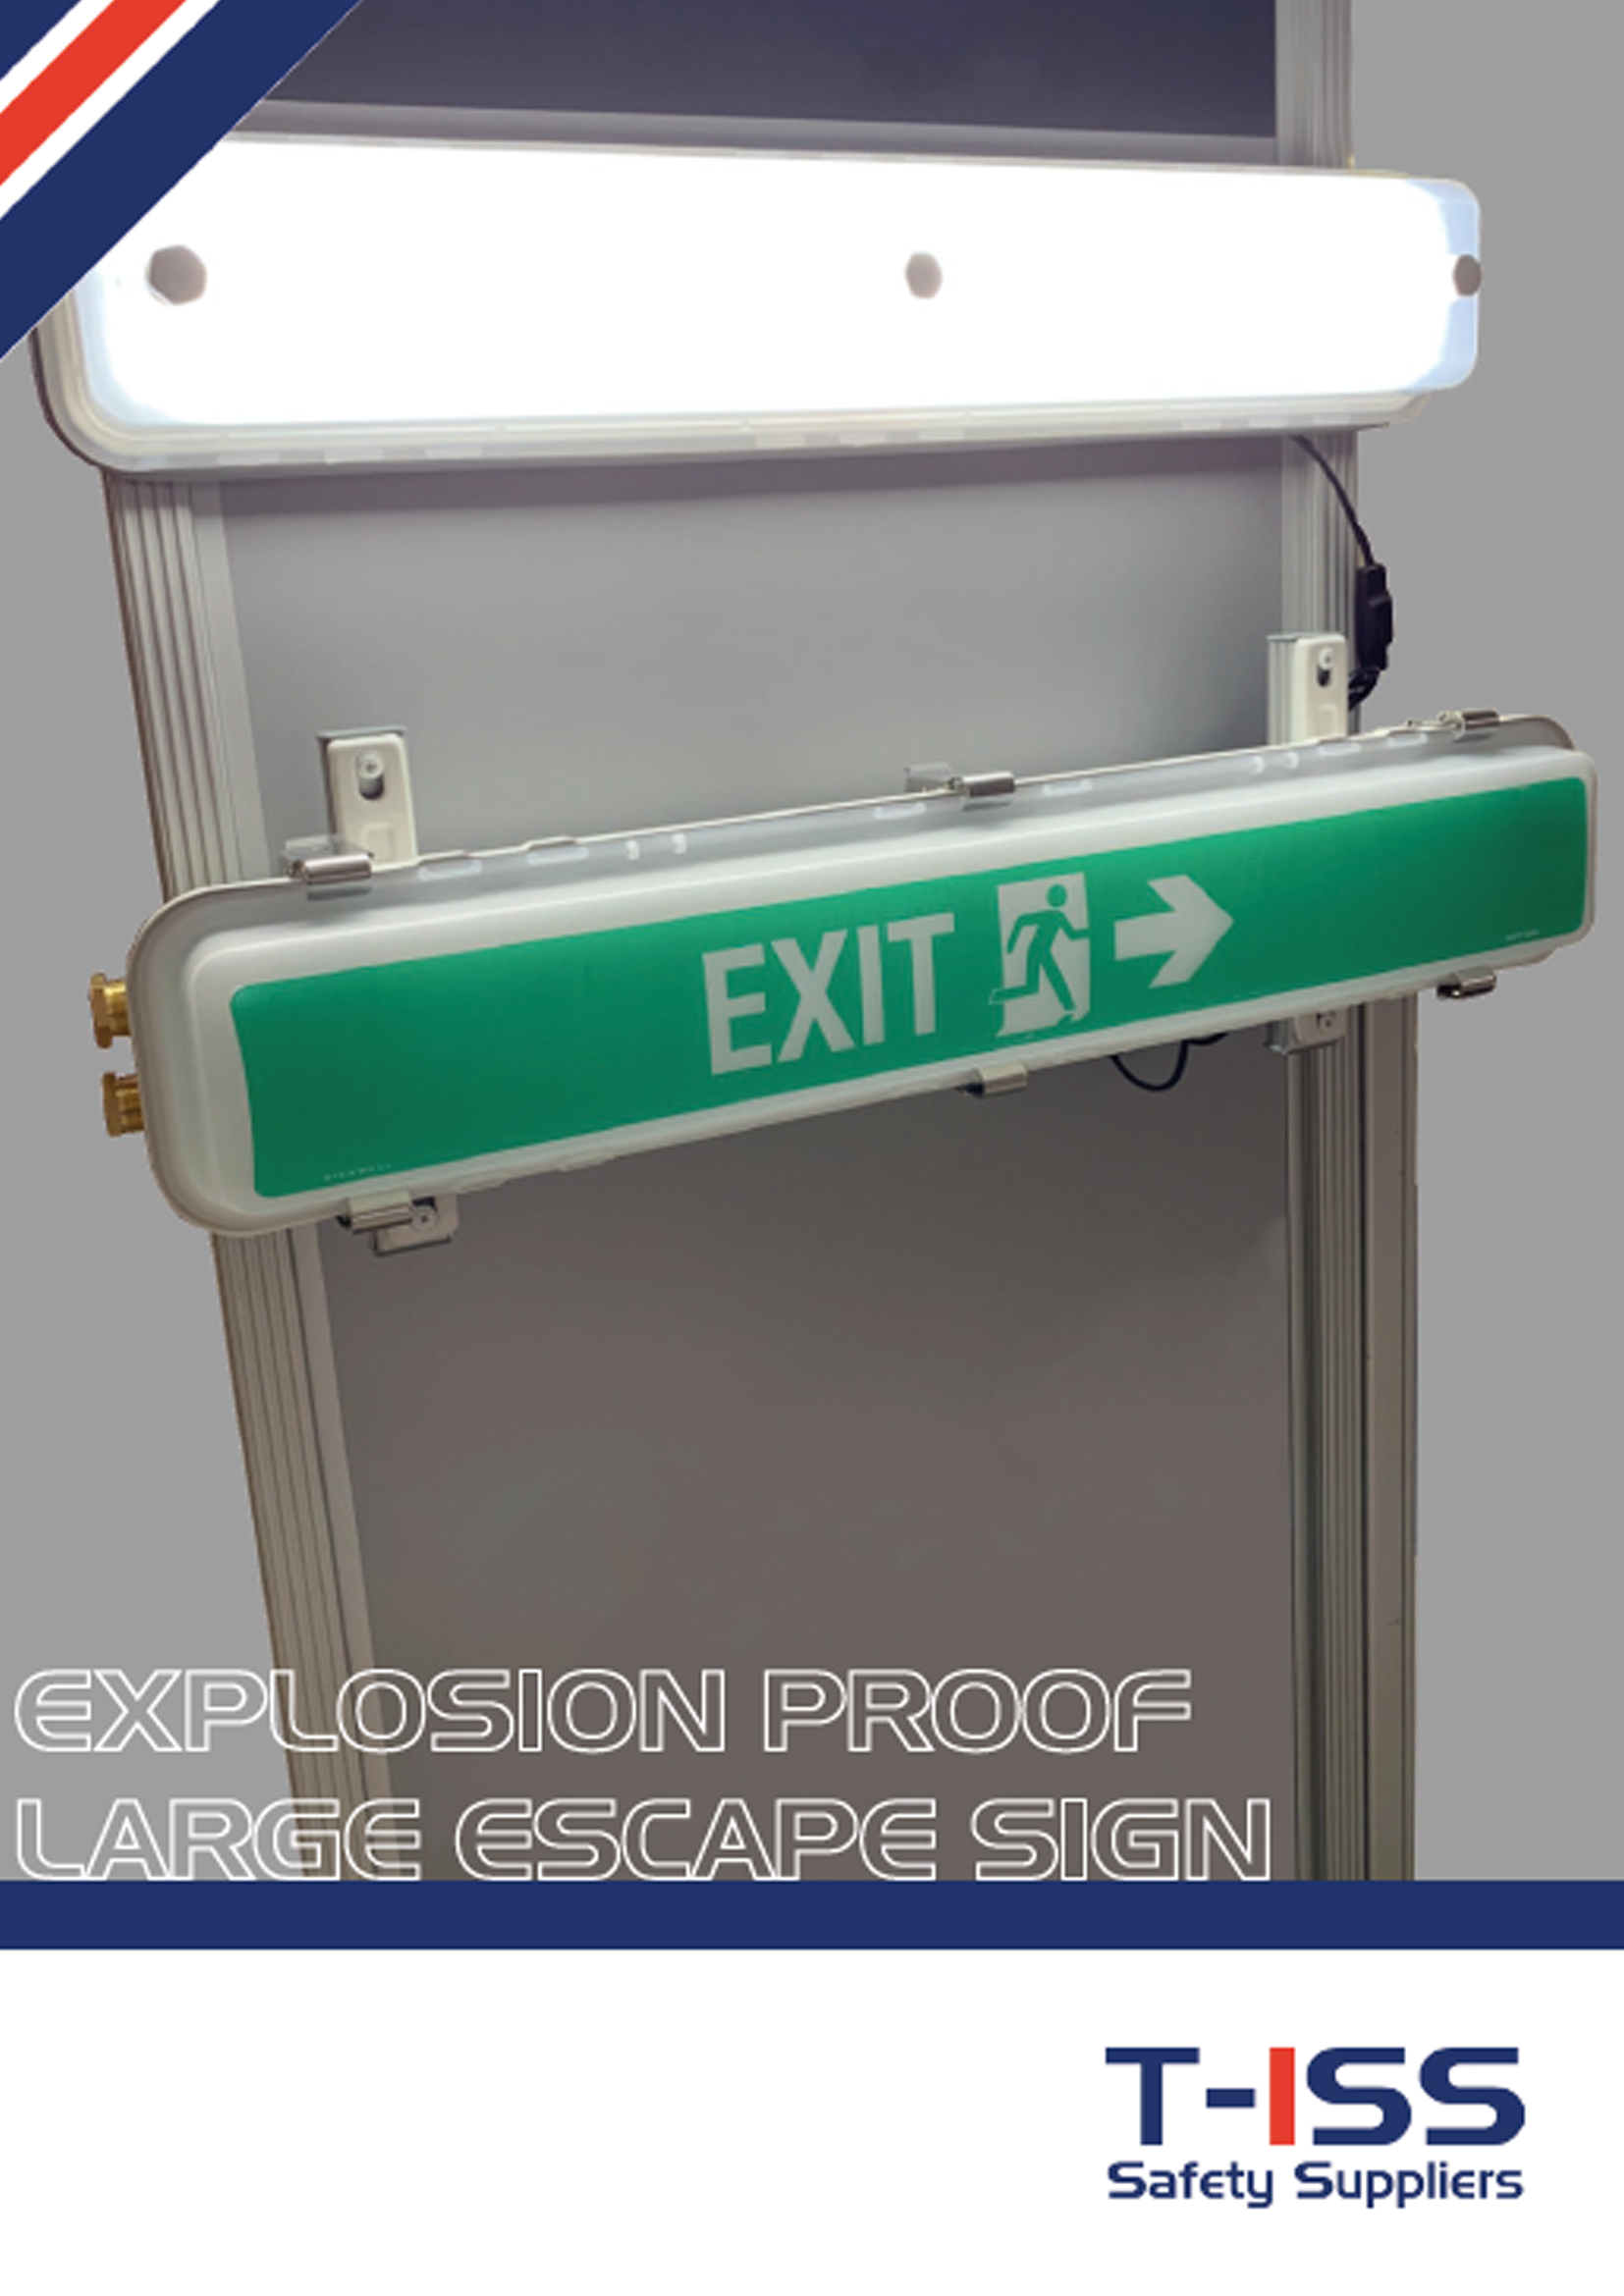 Flyer Explosion proof large escape sign by T-ISS Safety Suppliers